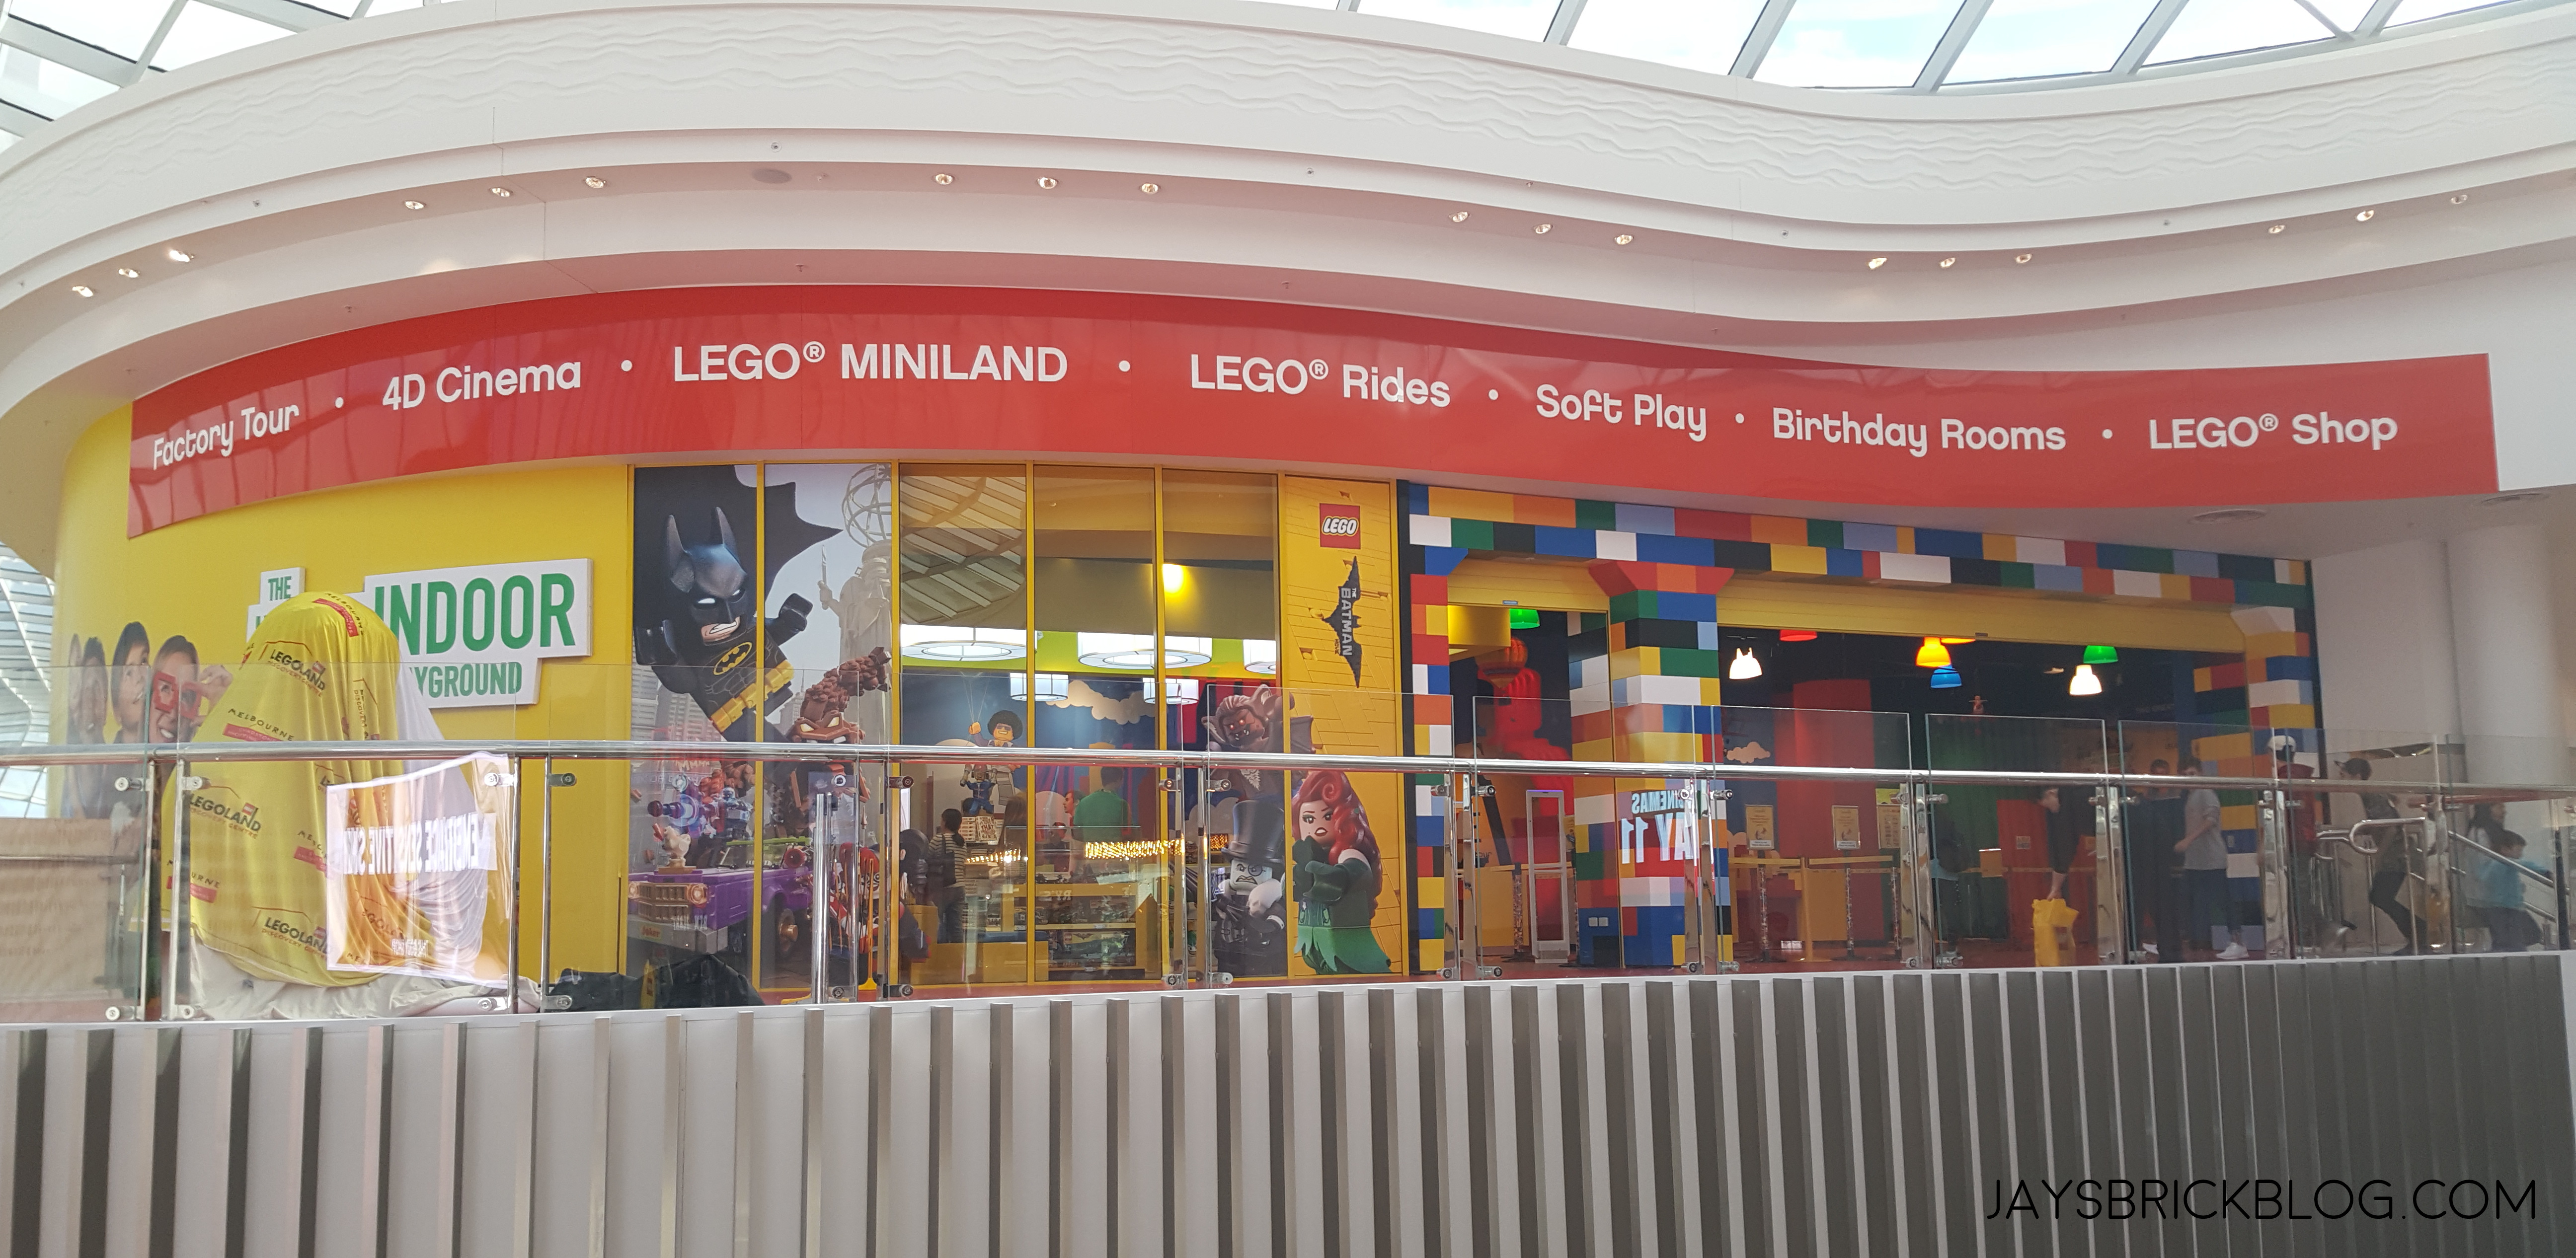 Checking out the LEGO Shop at the Legoland Discovery ...